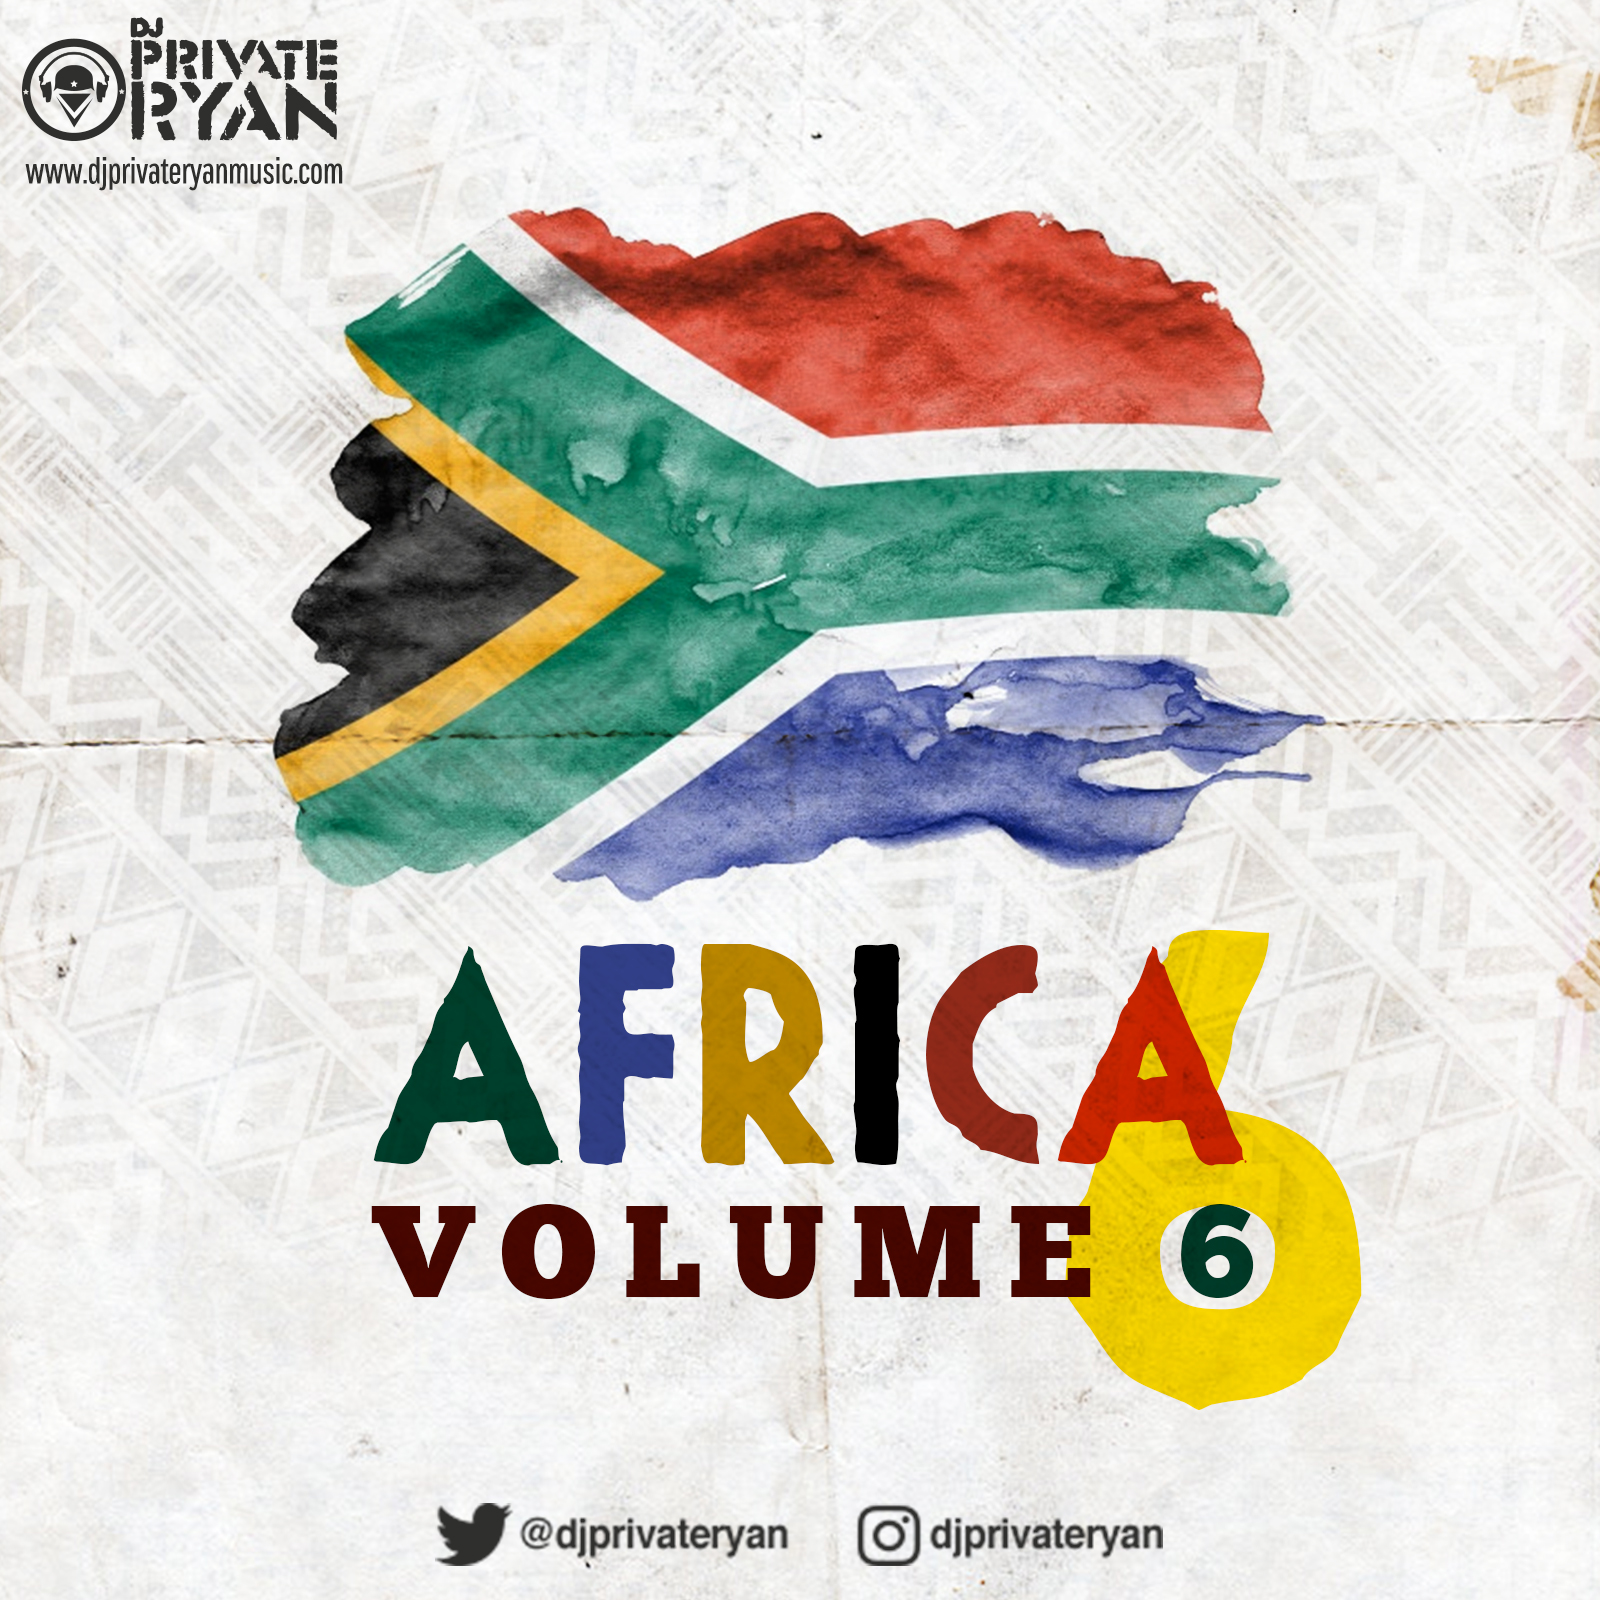 Private Ryan Presents Africa 6